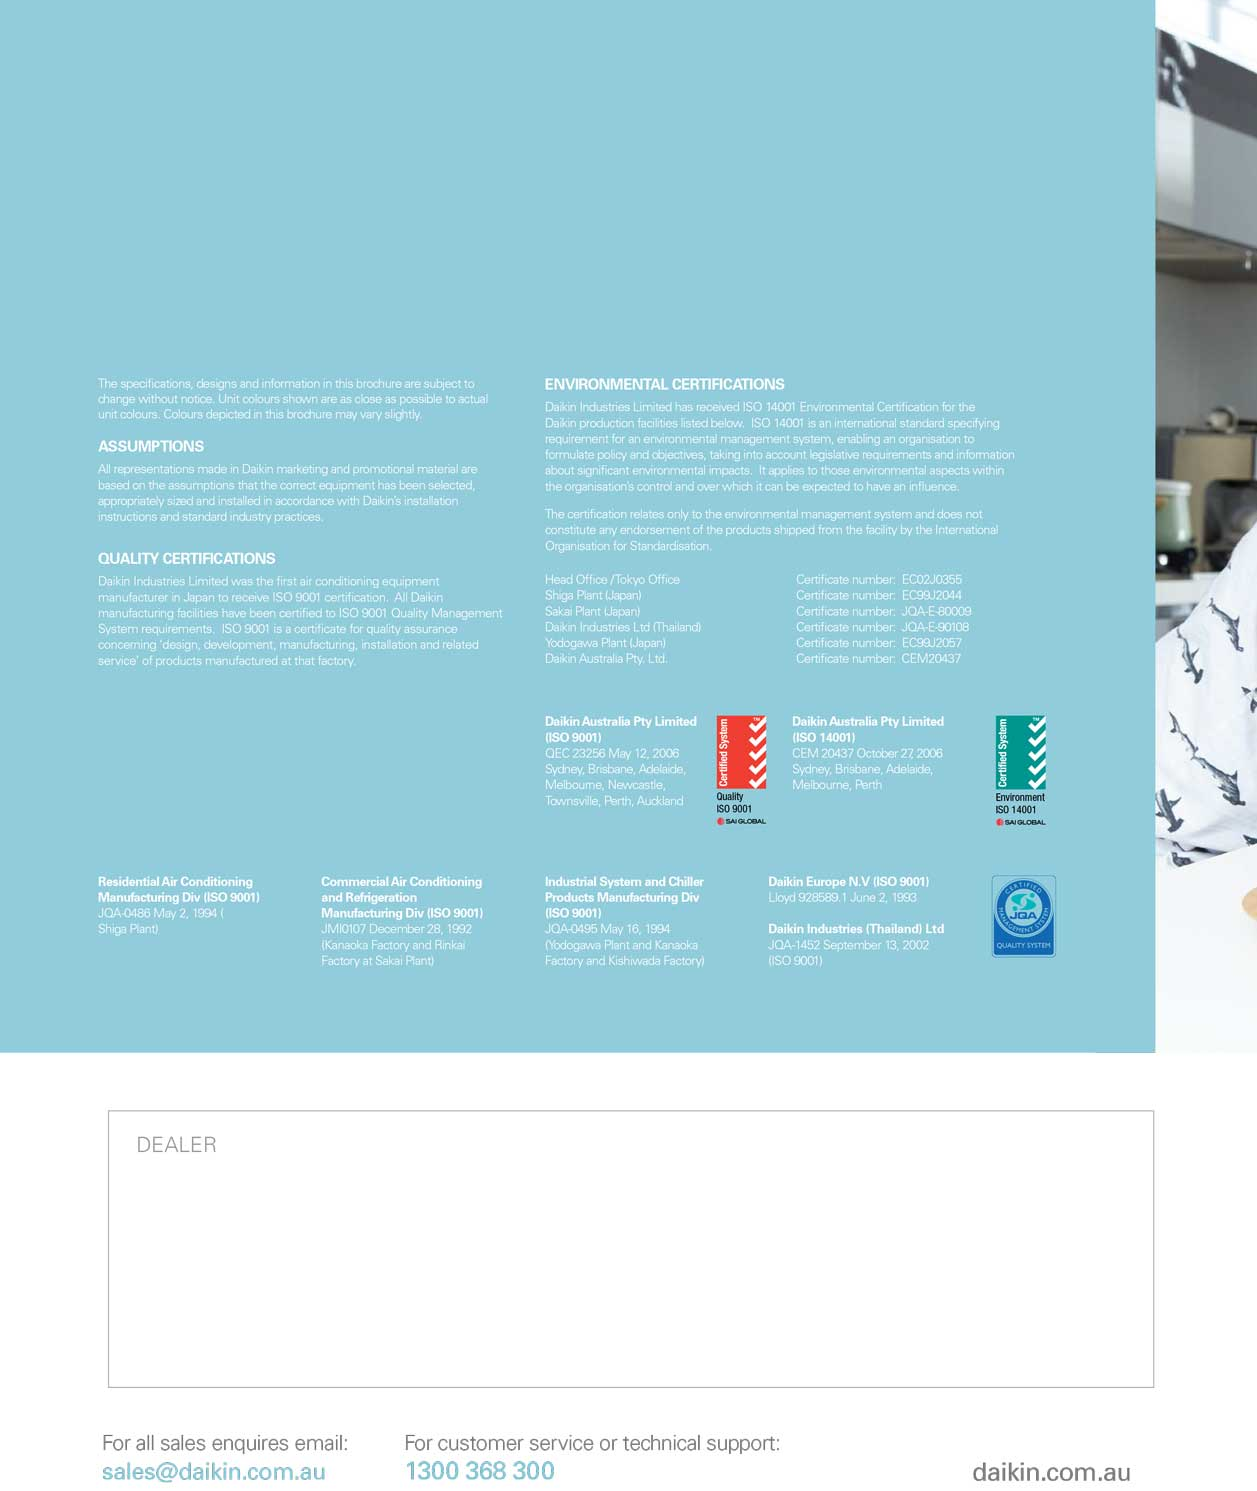 Daikin-Ducted-Air-Conditioning-Brochure-13